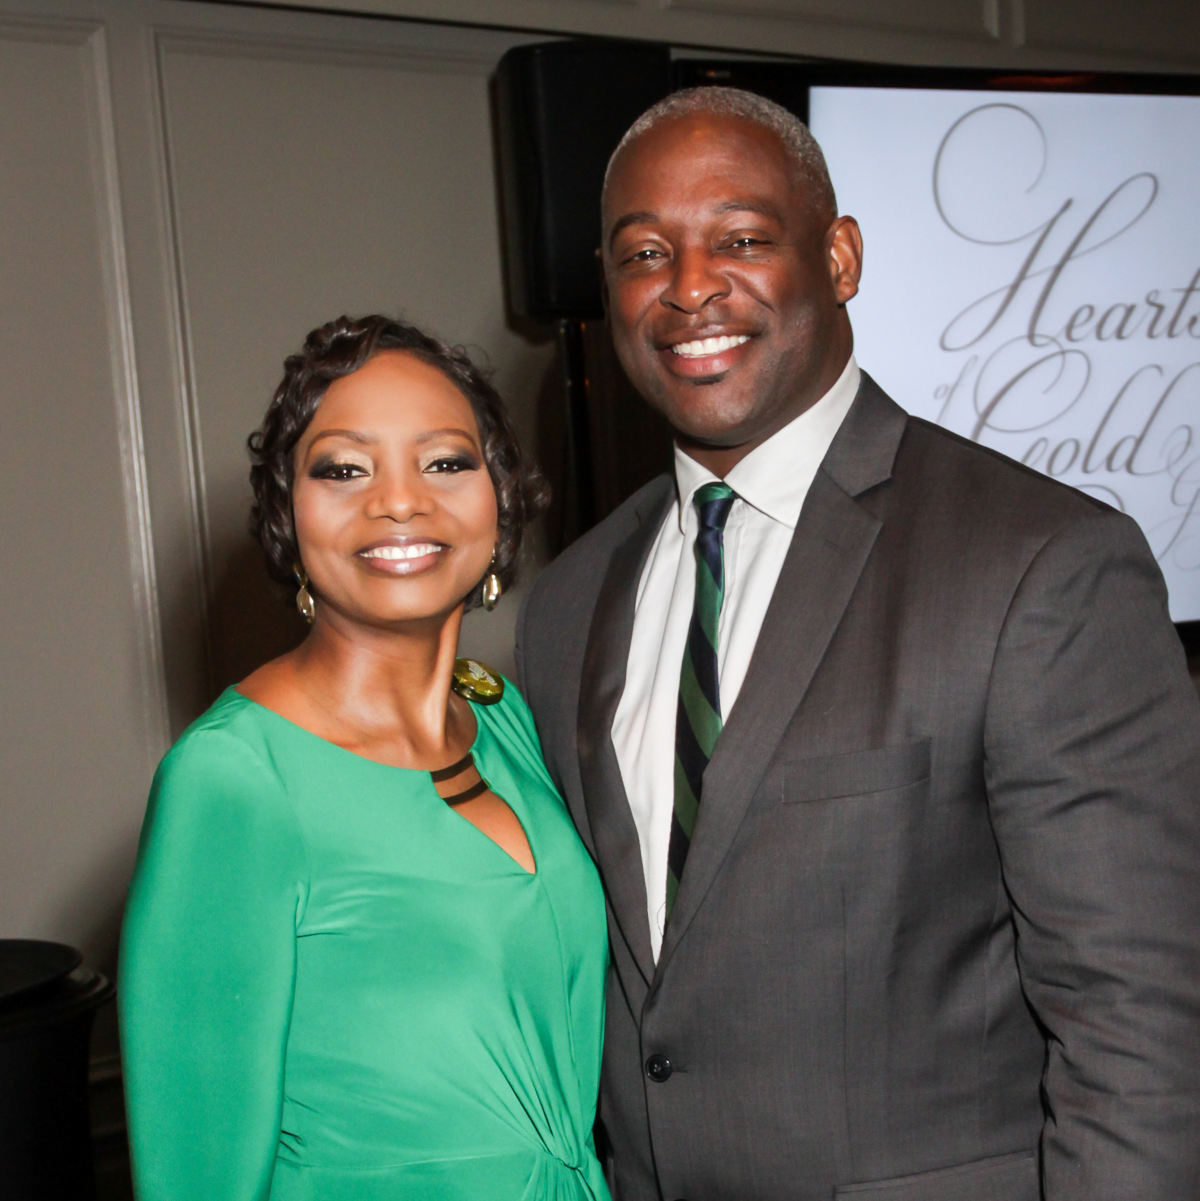 Hearts of Gold Gala The Health Museum President & CEO Melanie Johnson, Ed.D., and Bruce Johnson